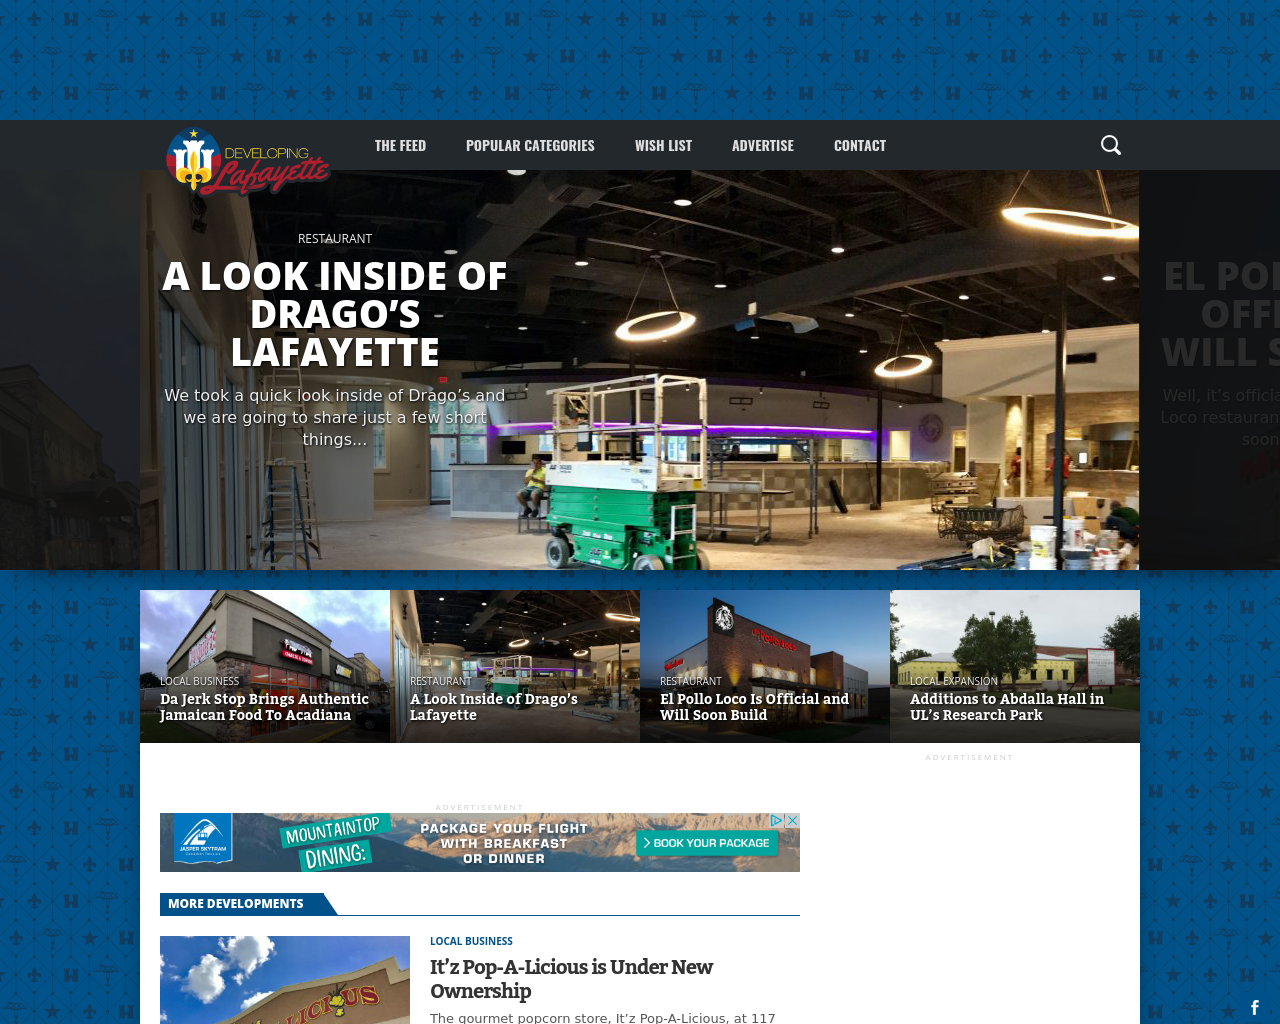 Developing-Lafayette-Advertising-Reviews-Pricing